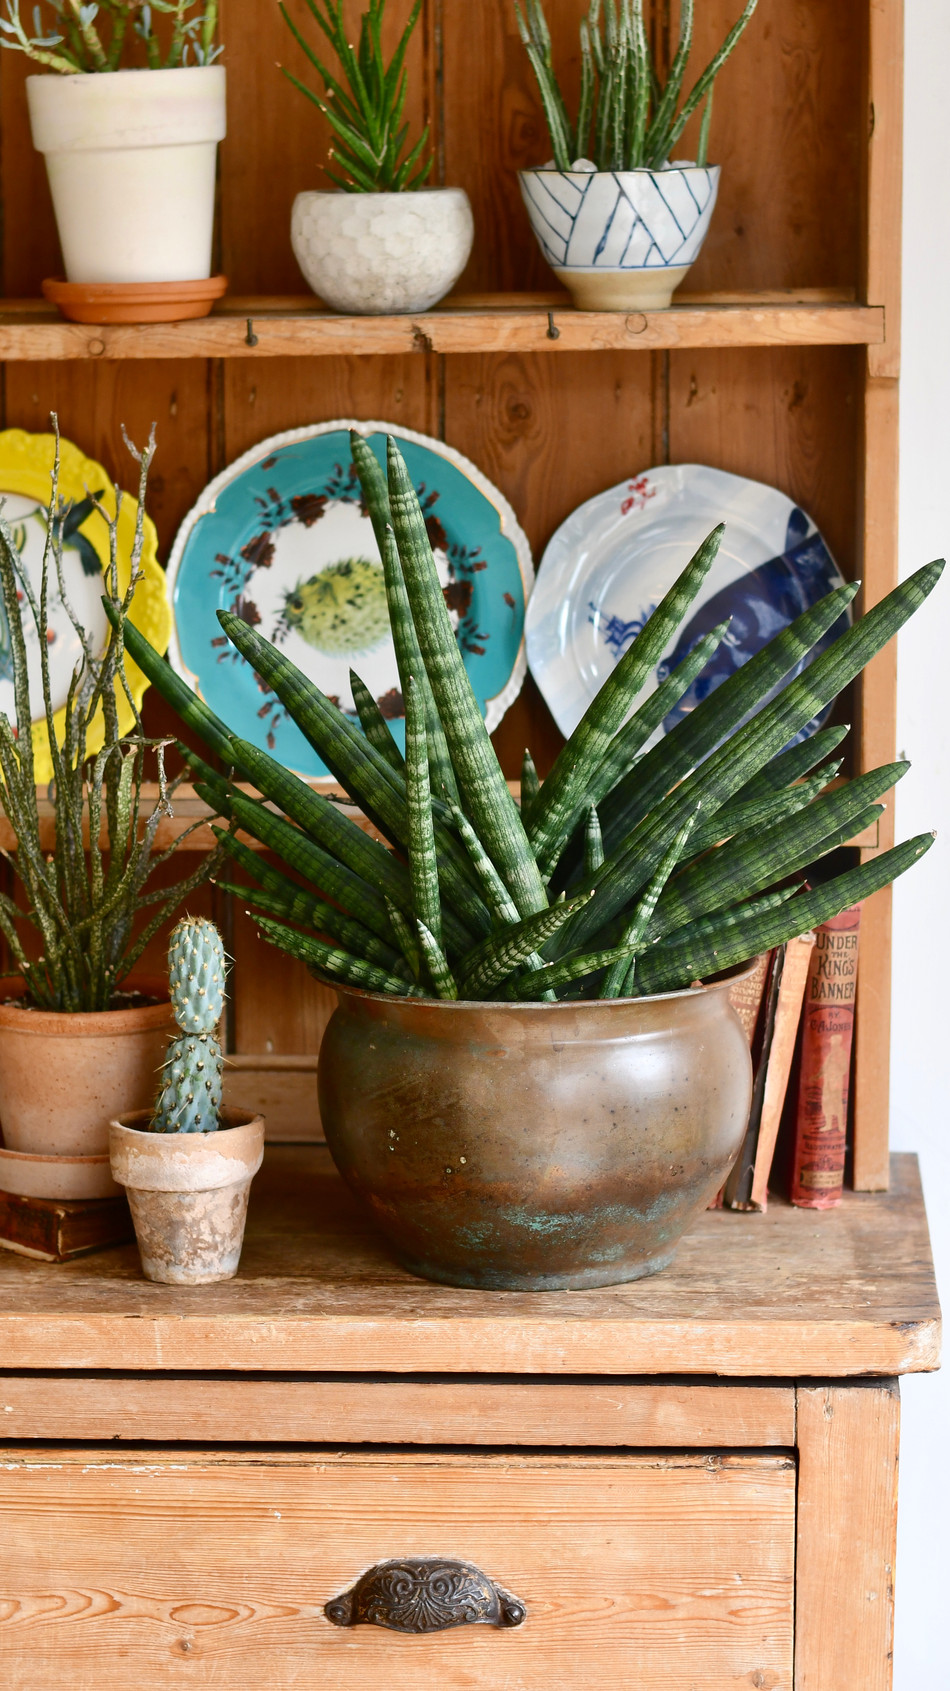 How to care for Sansevieria